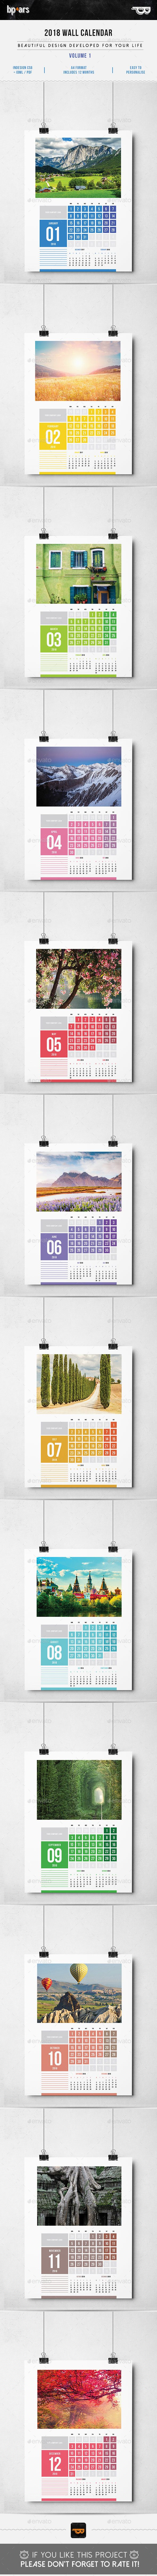 Calendars 2018 vol I | Poster Calendars — Photoshop PSD #11x17 #dates • Download ➝ https://graphicriver.net/item/calendars-2018-vol-i-poster-calendars/19713399?ref=pxcr